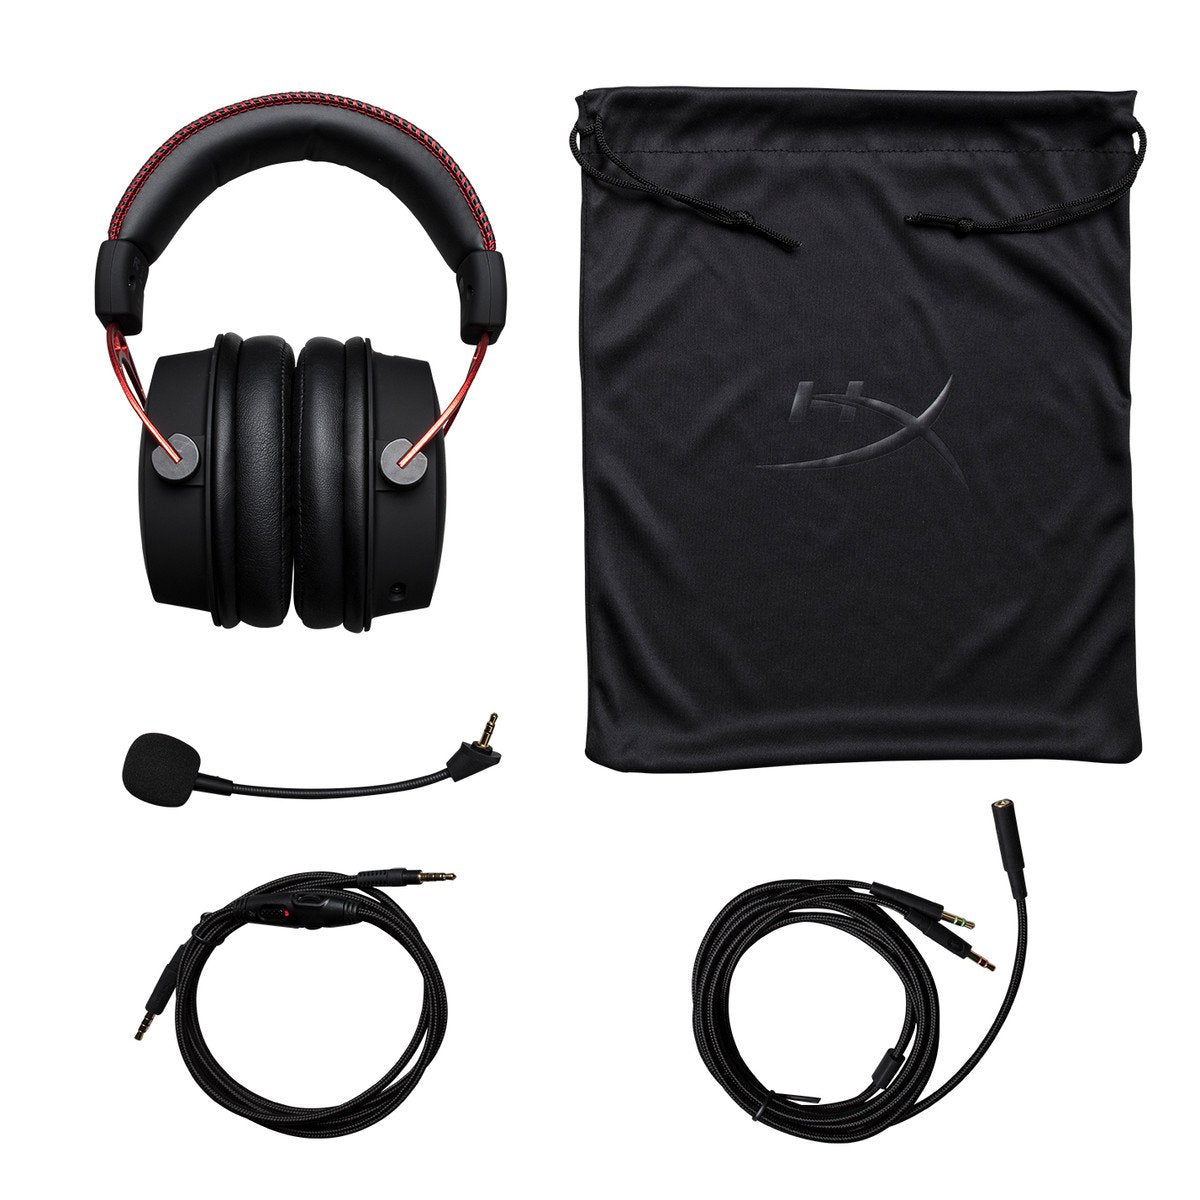 HyperX Cloud Alpha Pro Wired Gaming Headset (Red & Black)